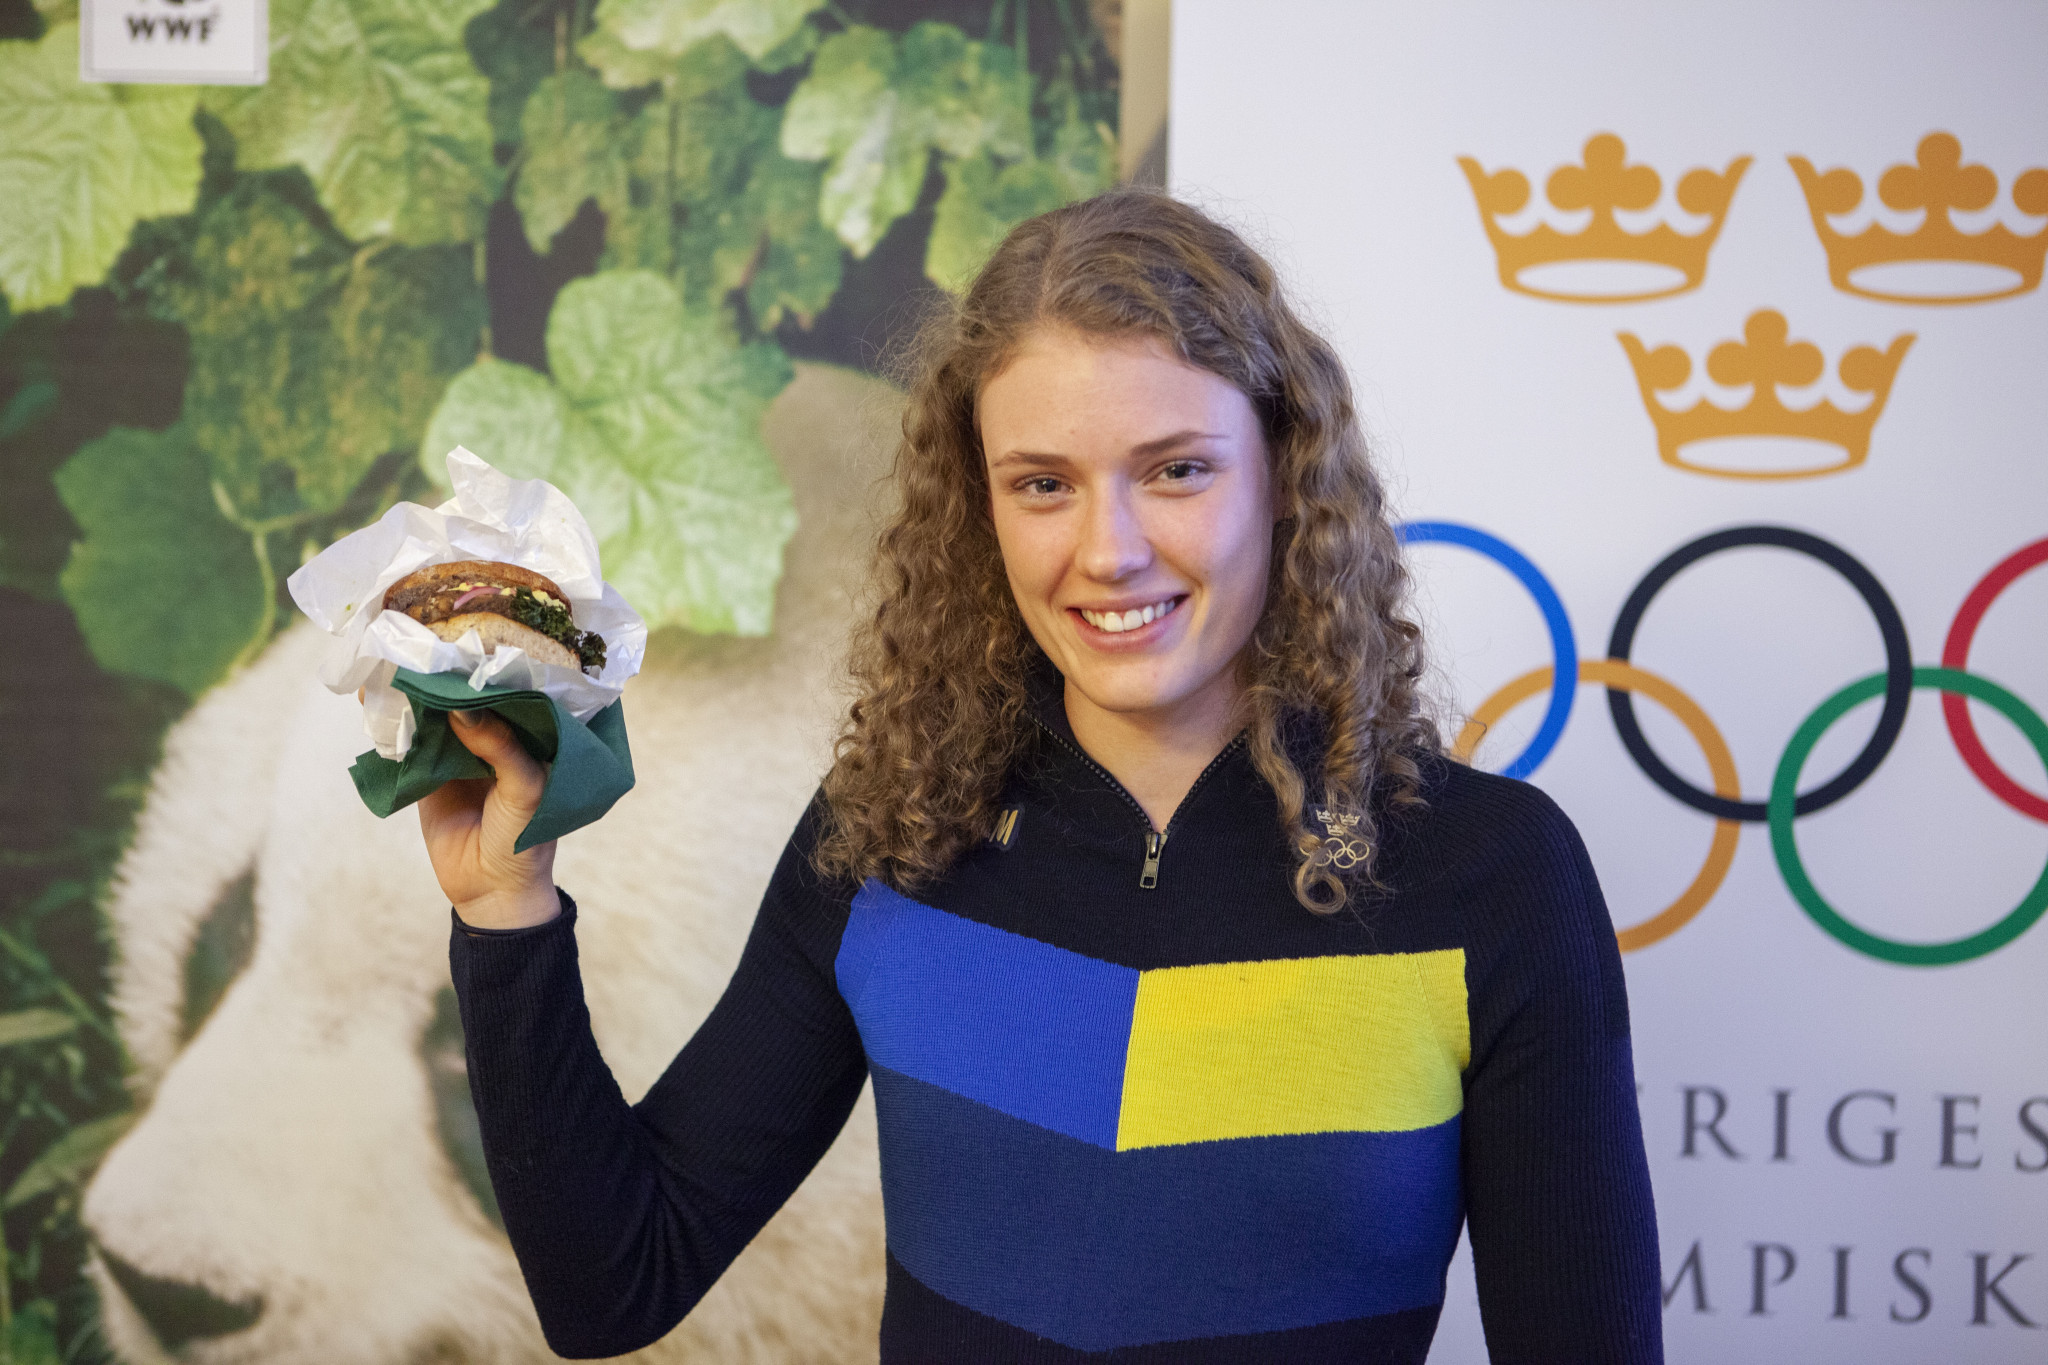 Swedish Olympic Committee and World Wildlife Fund to develop vegetarian food for athletes